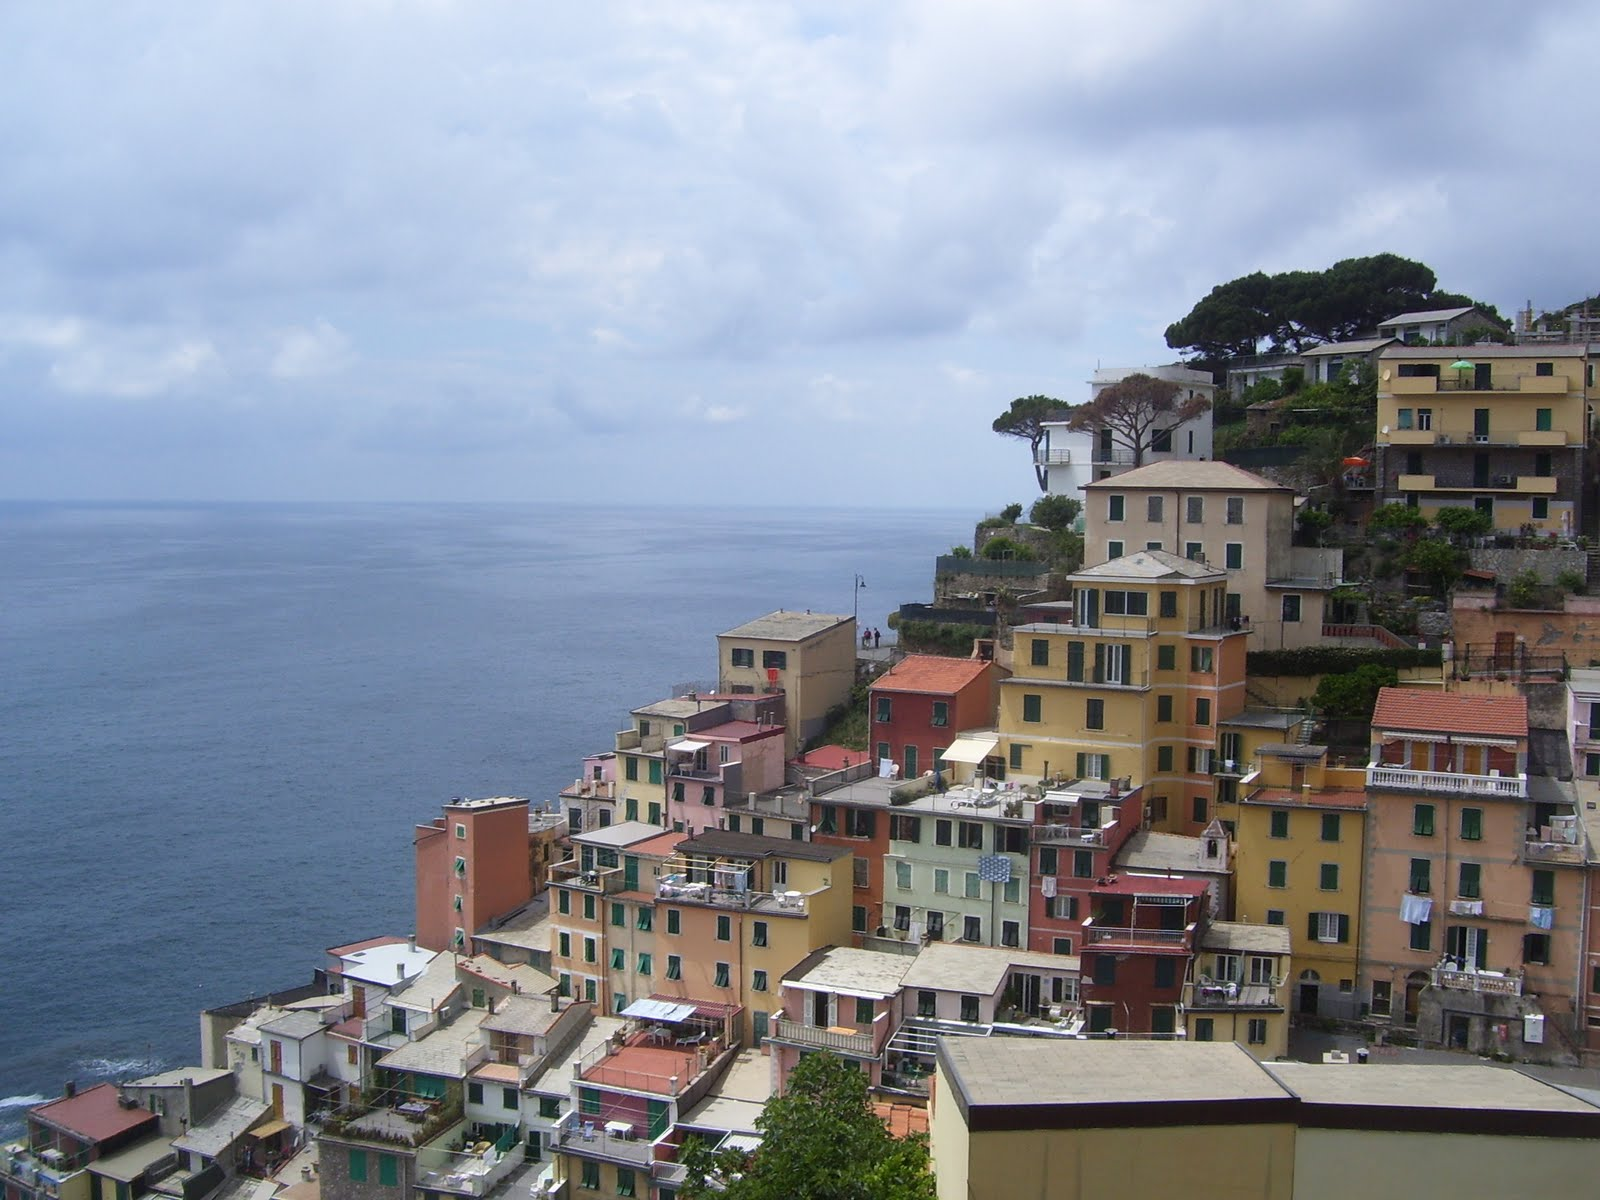 Leehols cinque terre 5 villages very idyllic for Hotels 5 terres